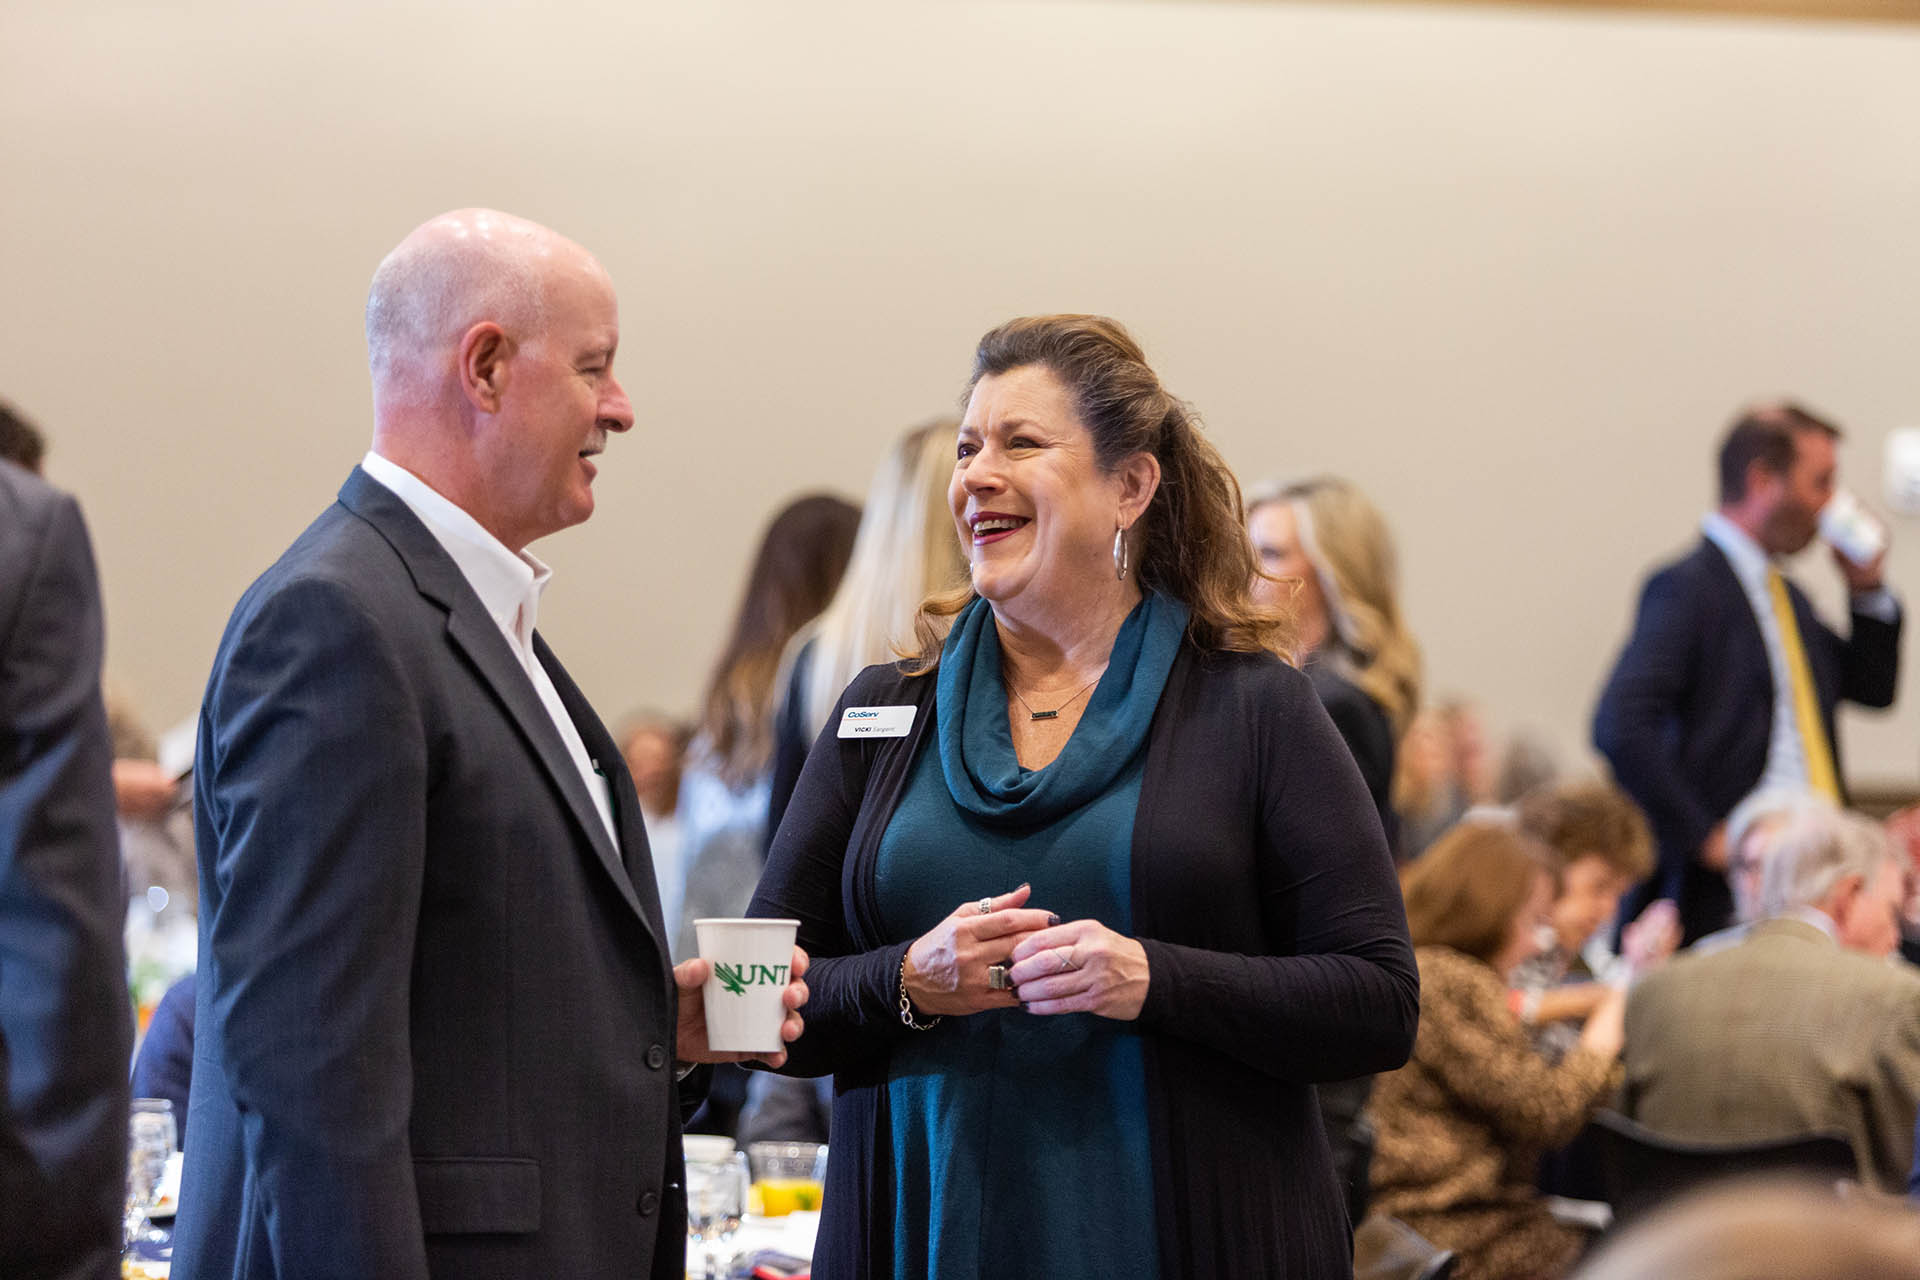 Professional business event photography